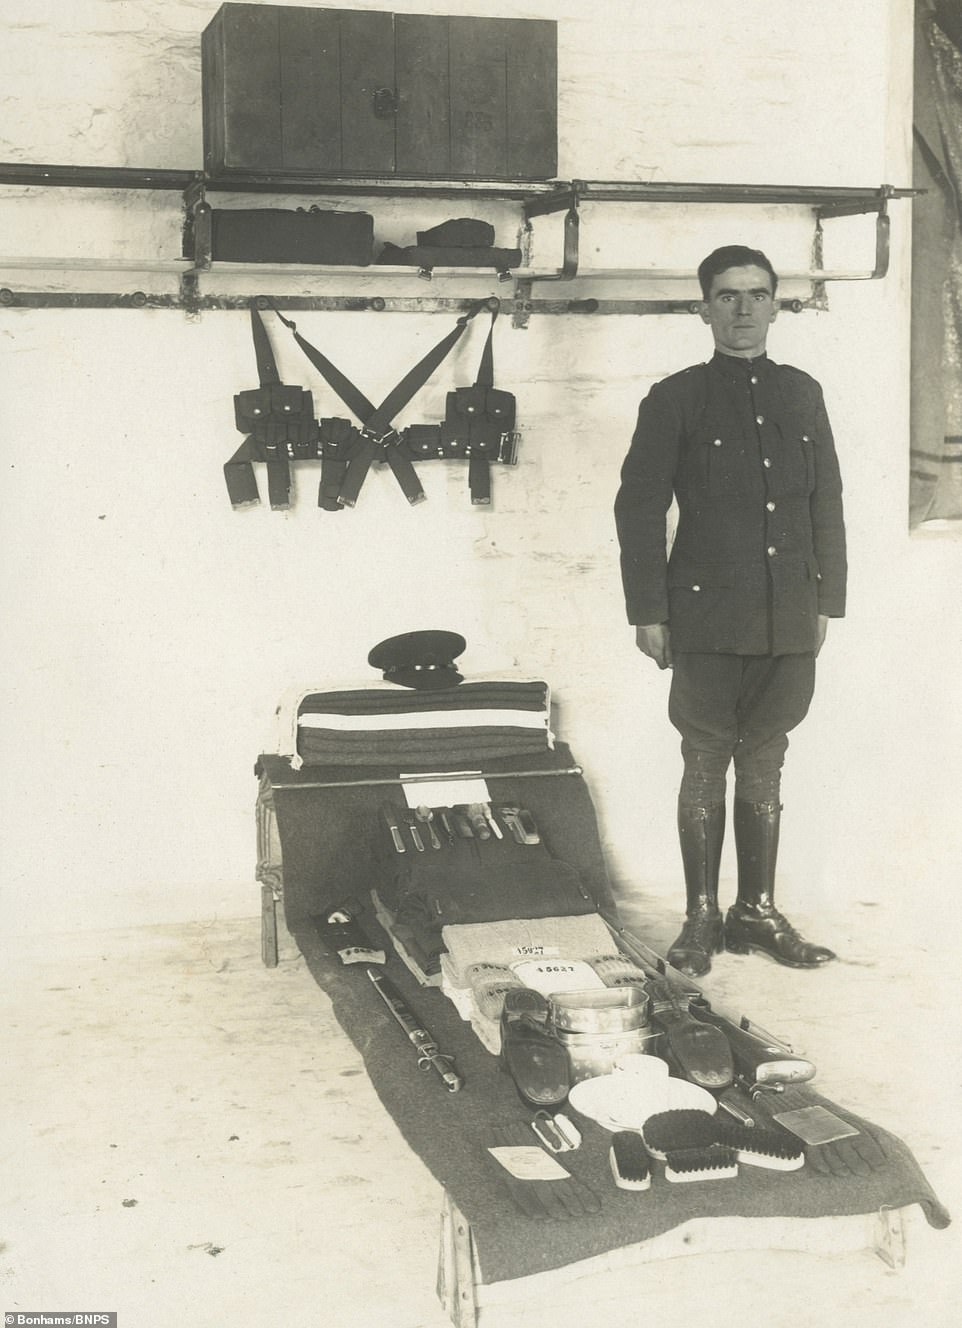 A soldier poses by his bed in one of a series a photographs soldier documenting the Irish hostilities of the 1920s